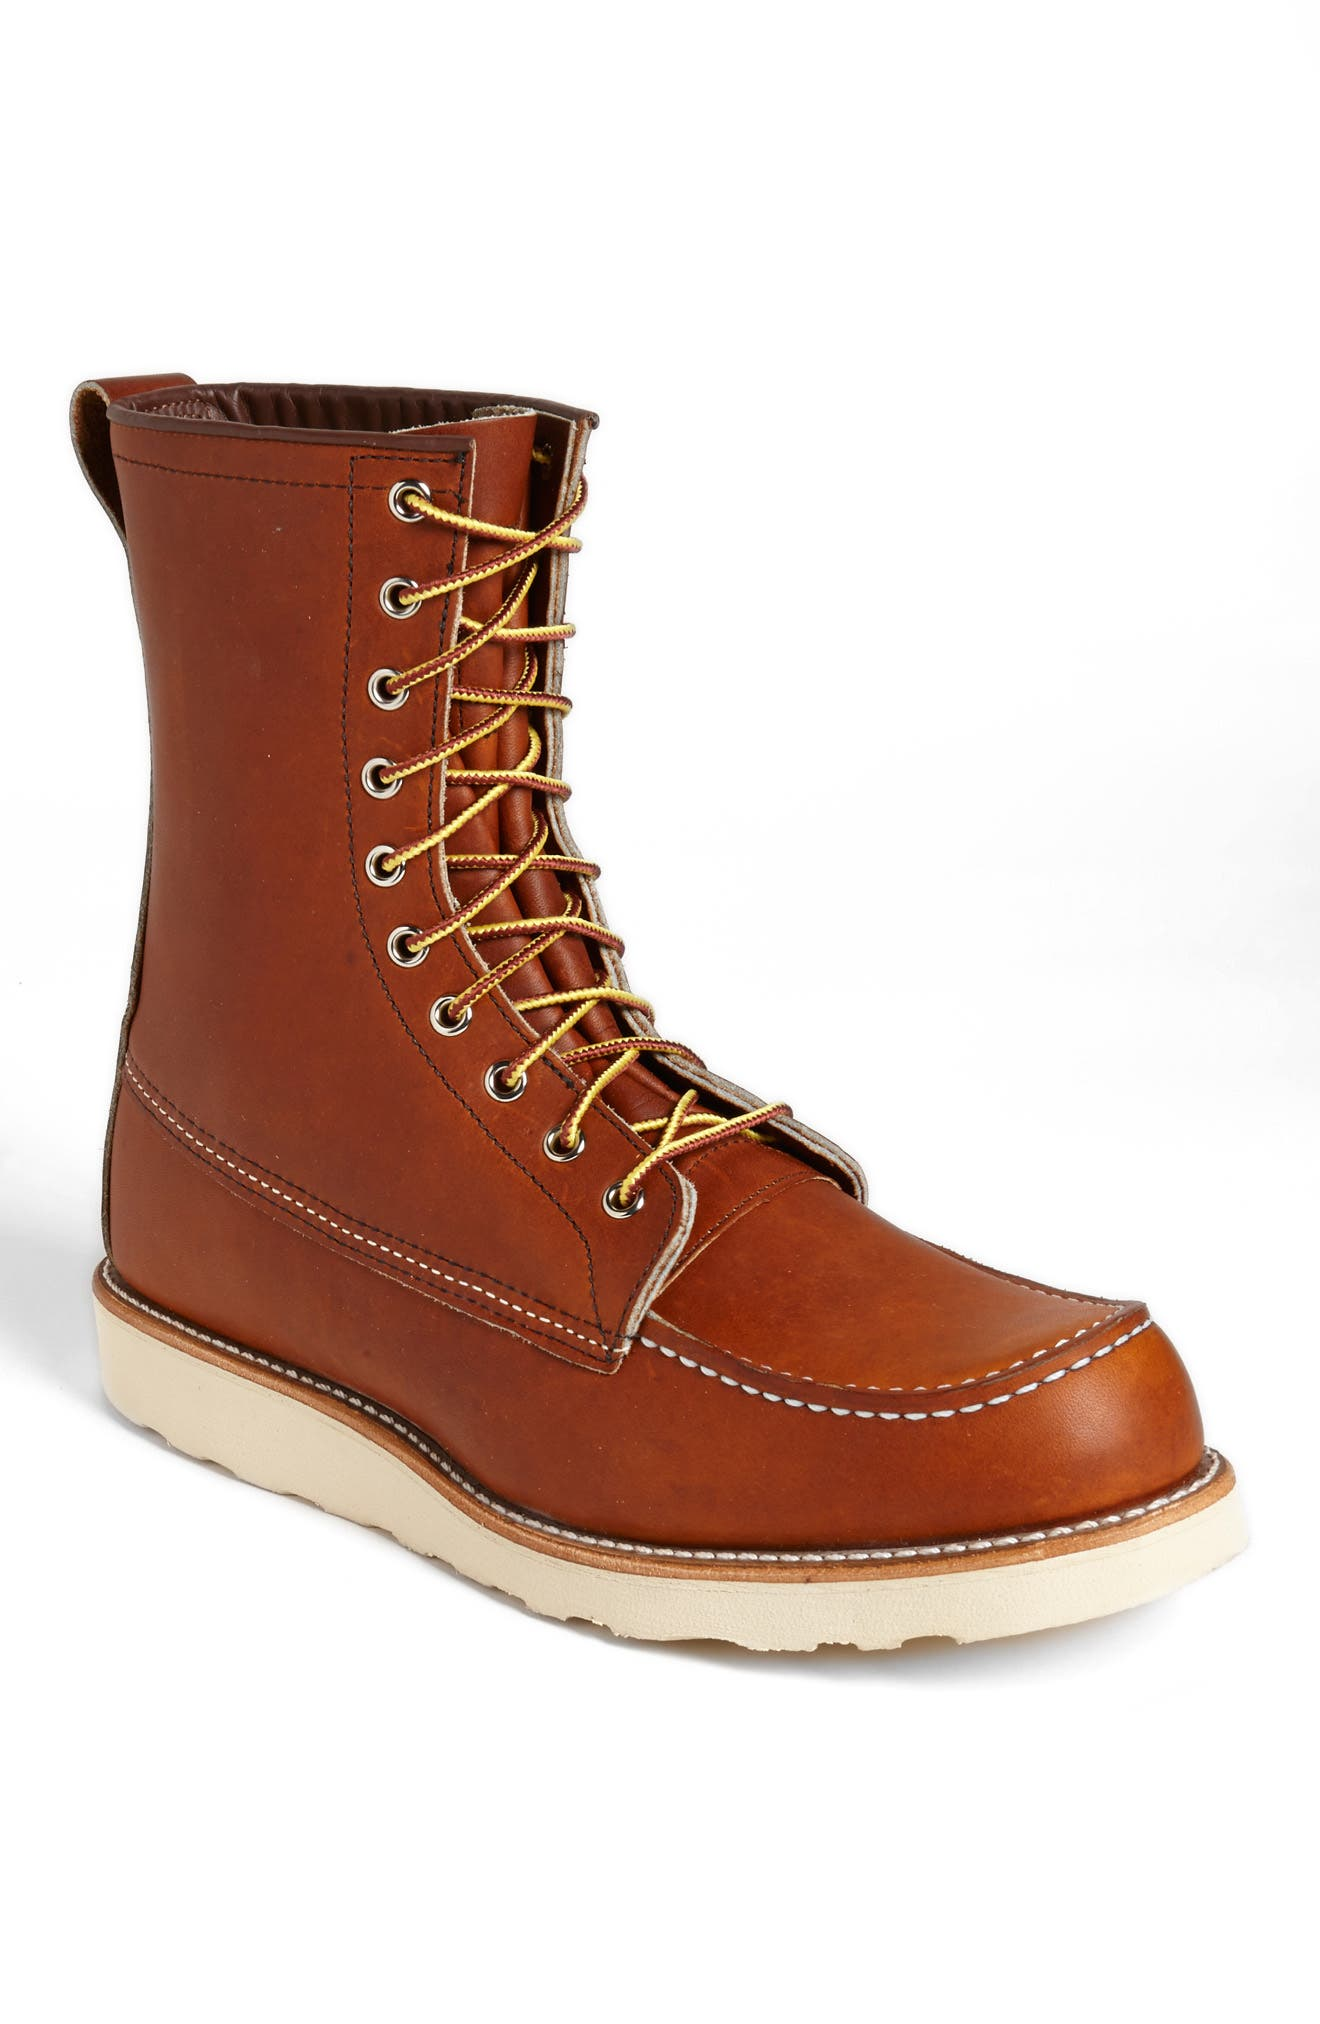 Red Wing Boots Shoes Nordstrom Cut Engineer Iron Safety Blue Leather